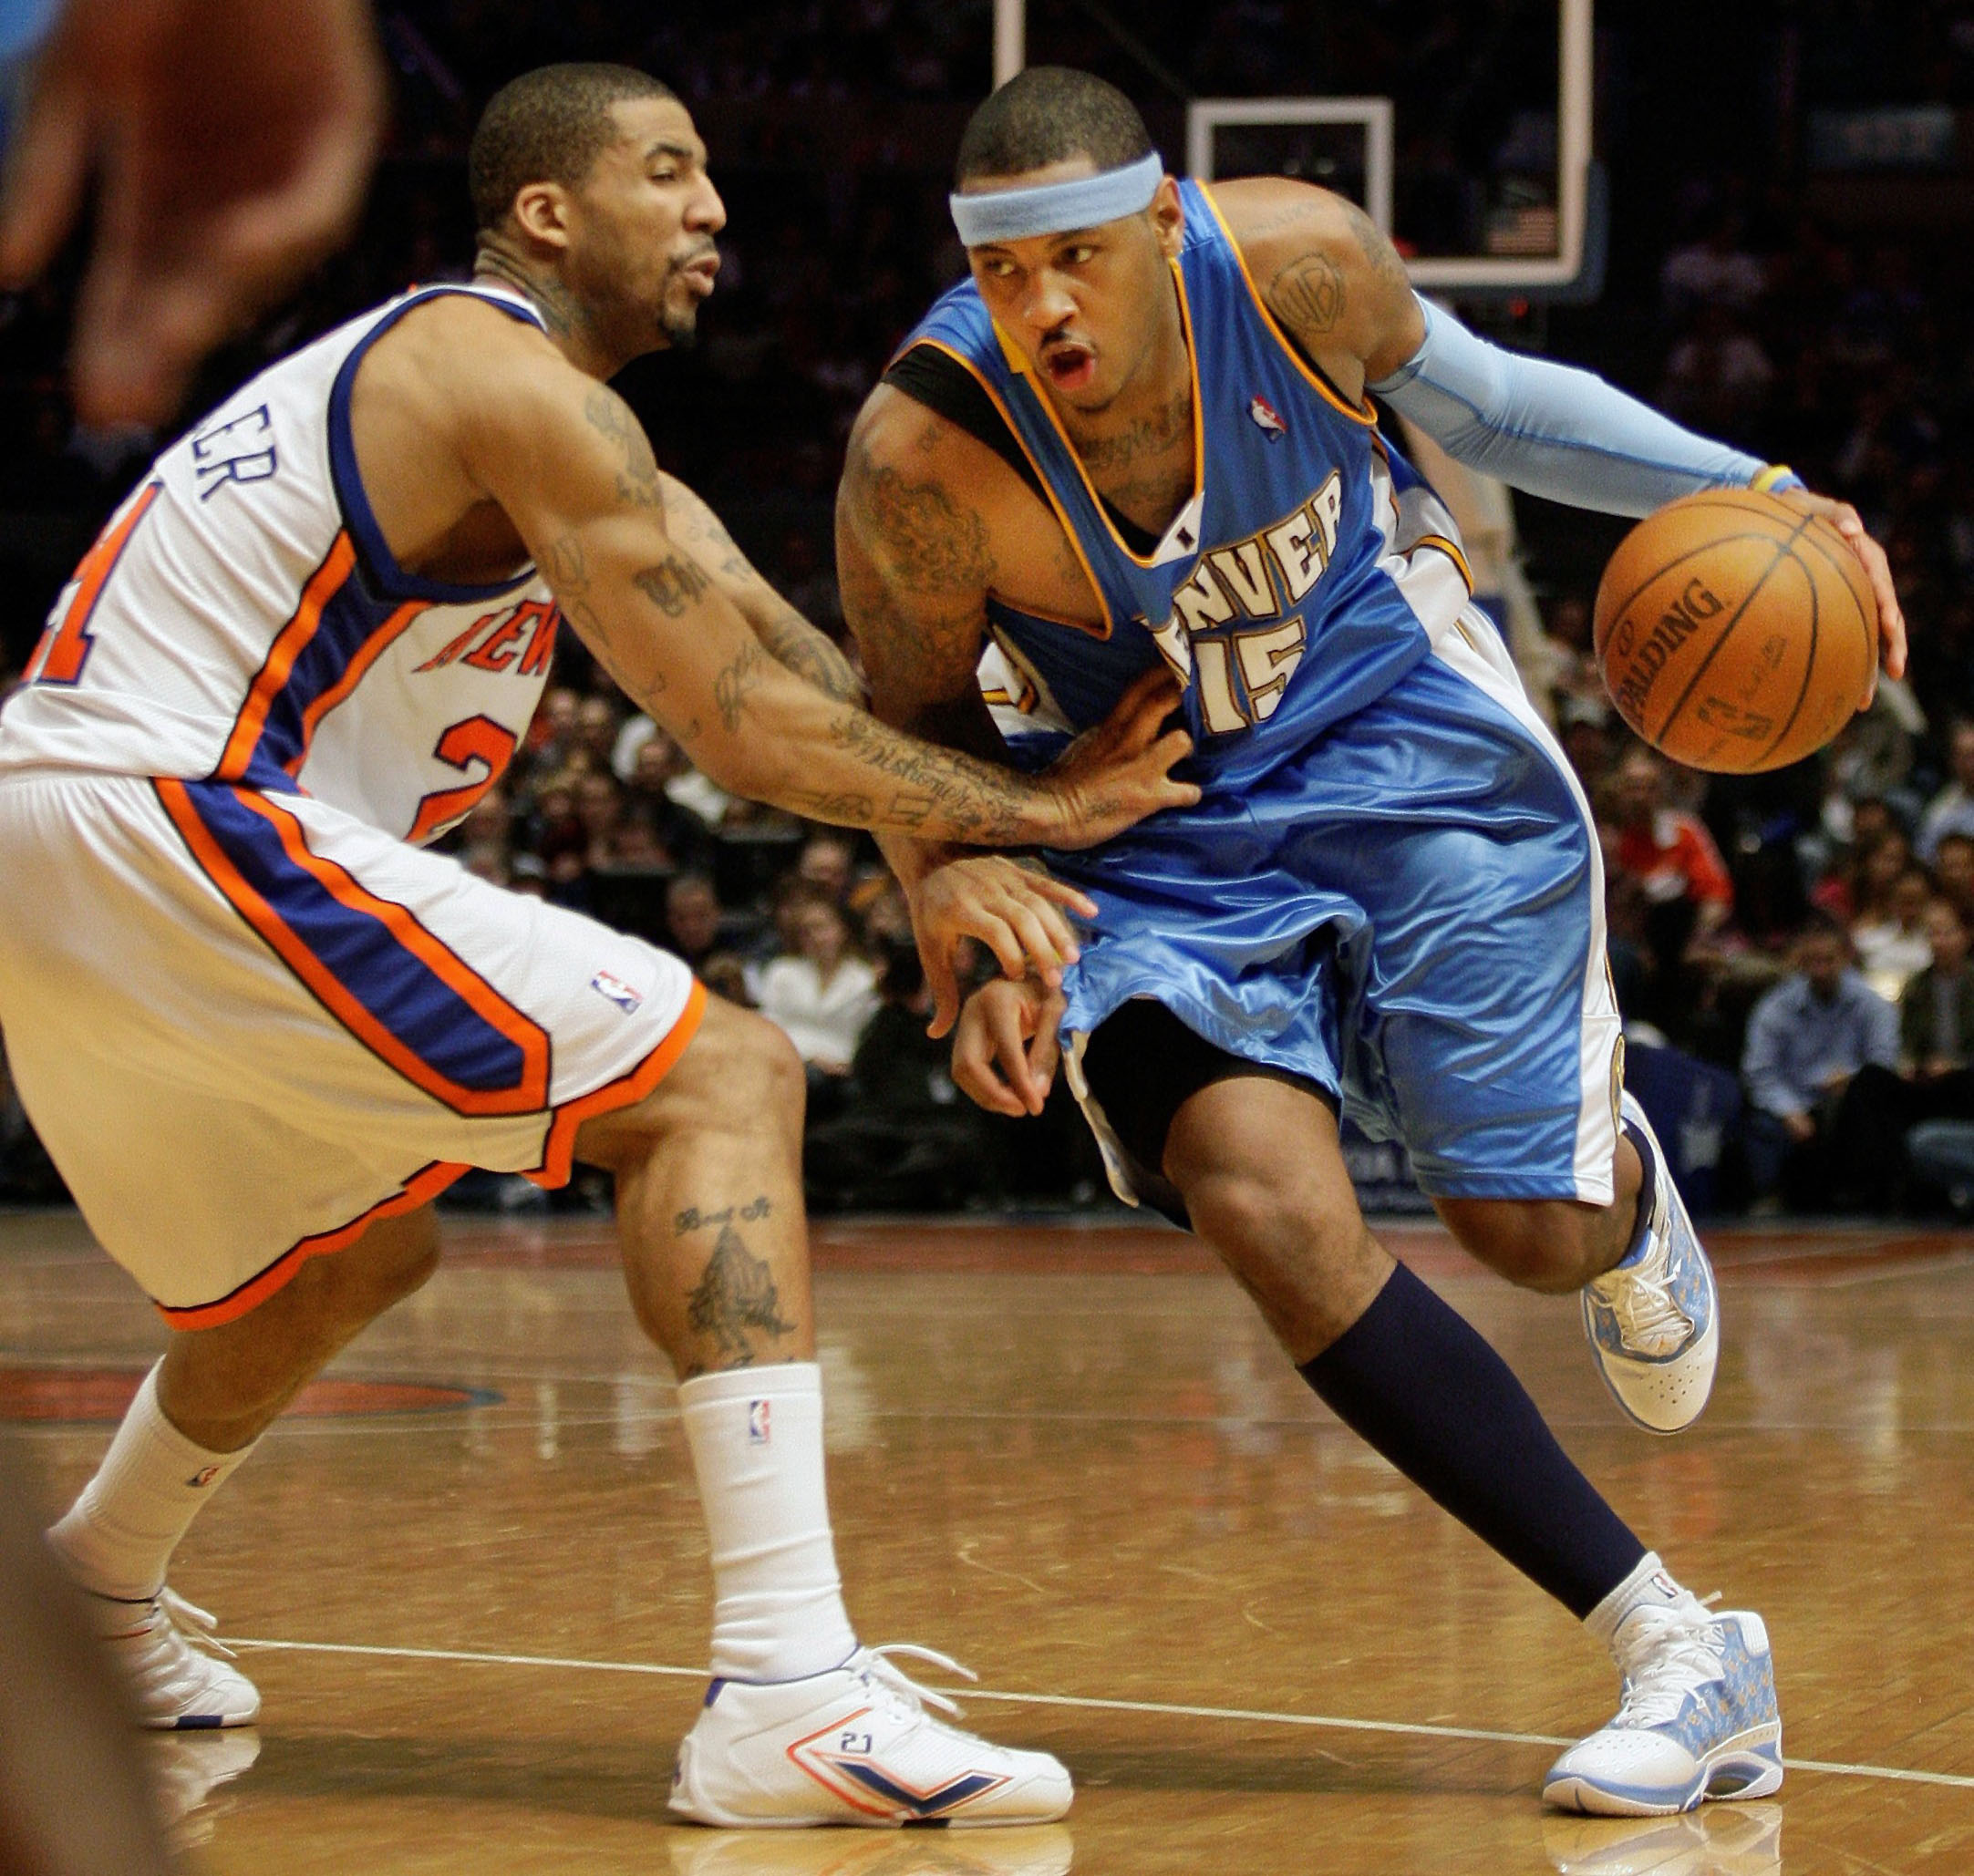 Denver Nuggets forward Carmelo Anthony, 15, drives past New York Knicks forward Wilson Chandler, left, in the fourth quarter of the Nuggets' game at M...